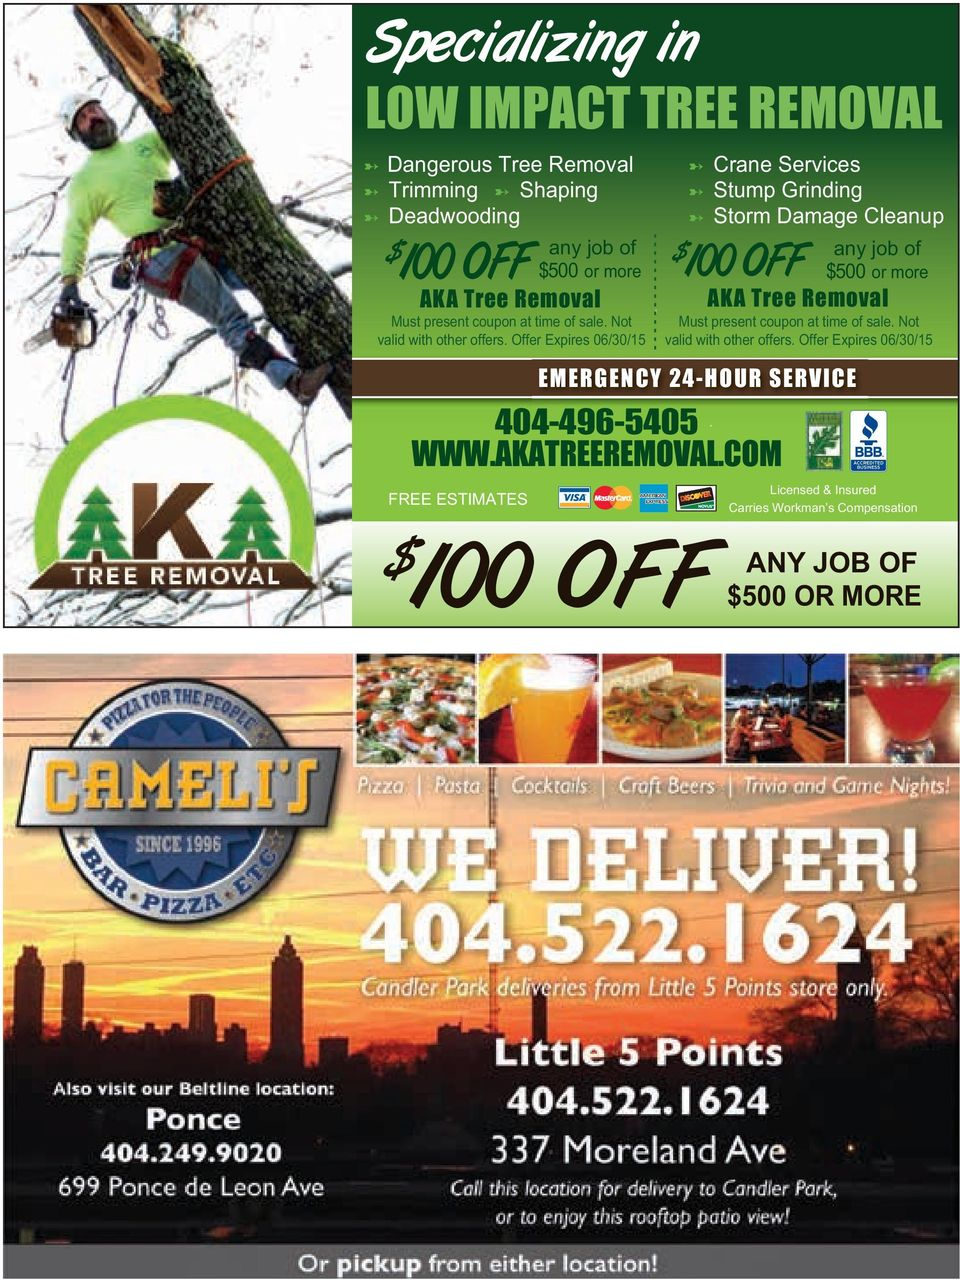 Offer Expires 06/30/15 $ 100 OFF any job of $500 or more AKA Tree Removal Must present coupon at time of sale. Not valid with other offers.